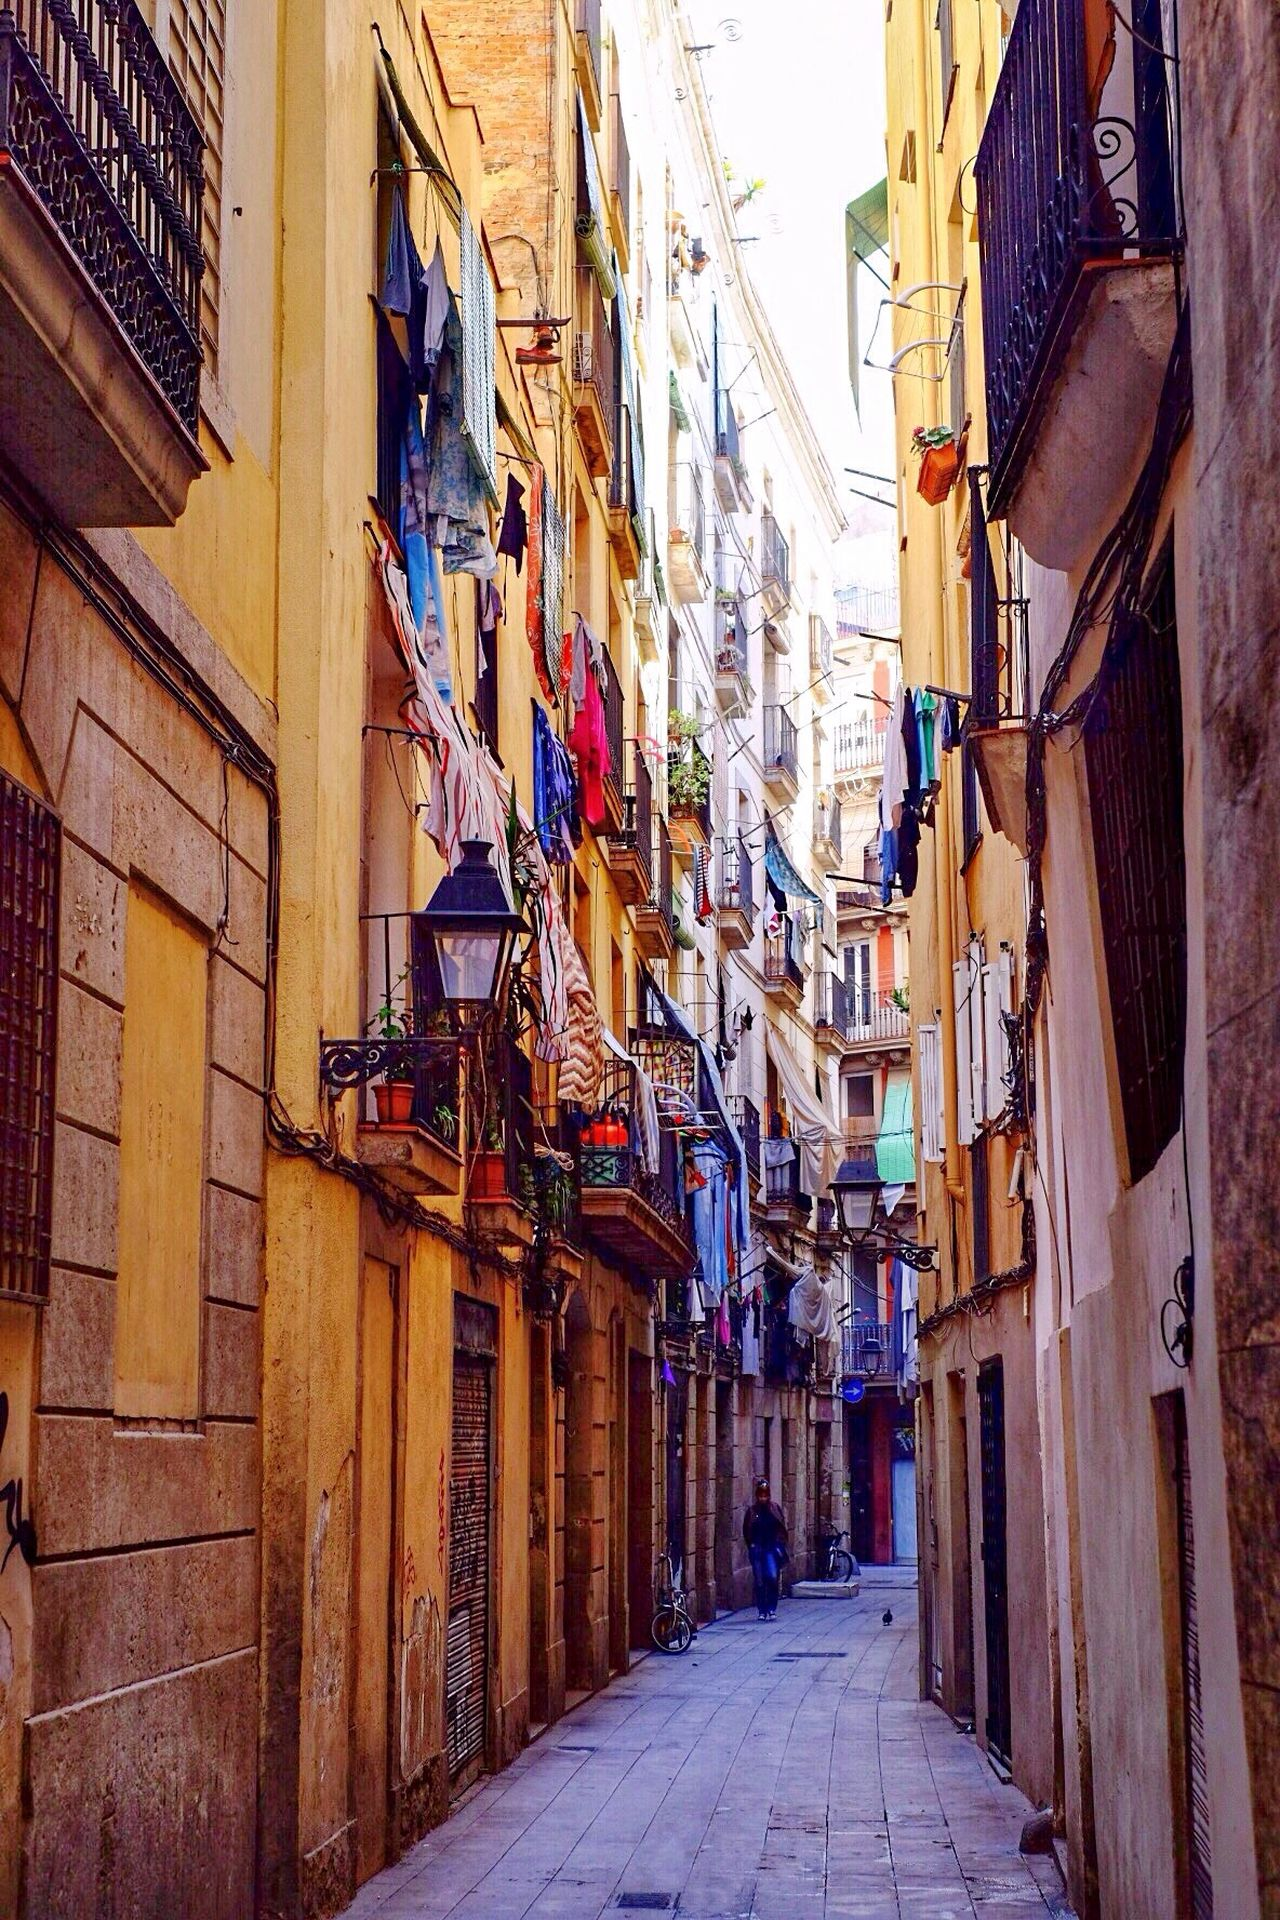 Building Exterior Architecture Built Structure Alley Travel Destinations Narrow El Born Hanging City Outdoors Balcony Laundry Day Sky Barcelona